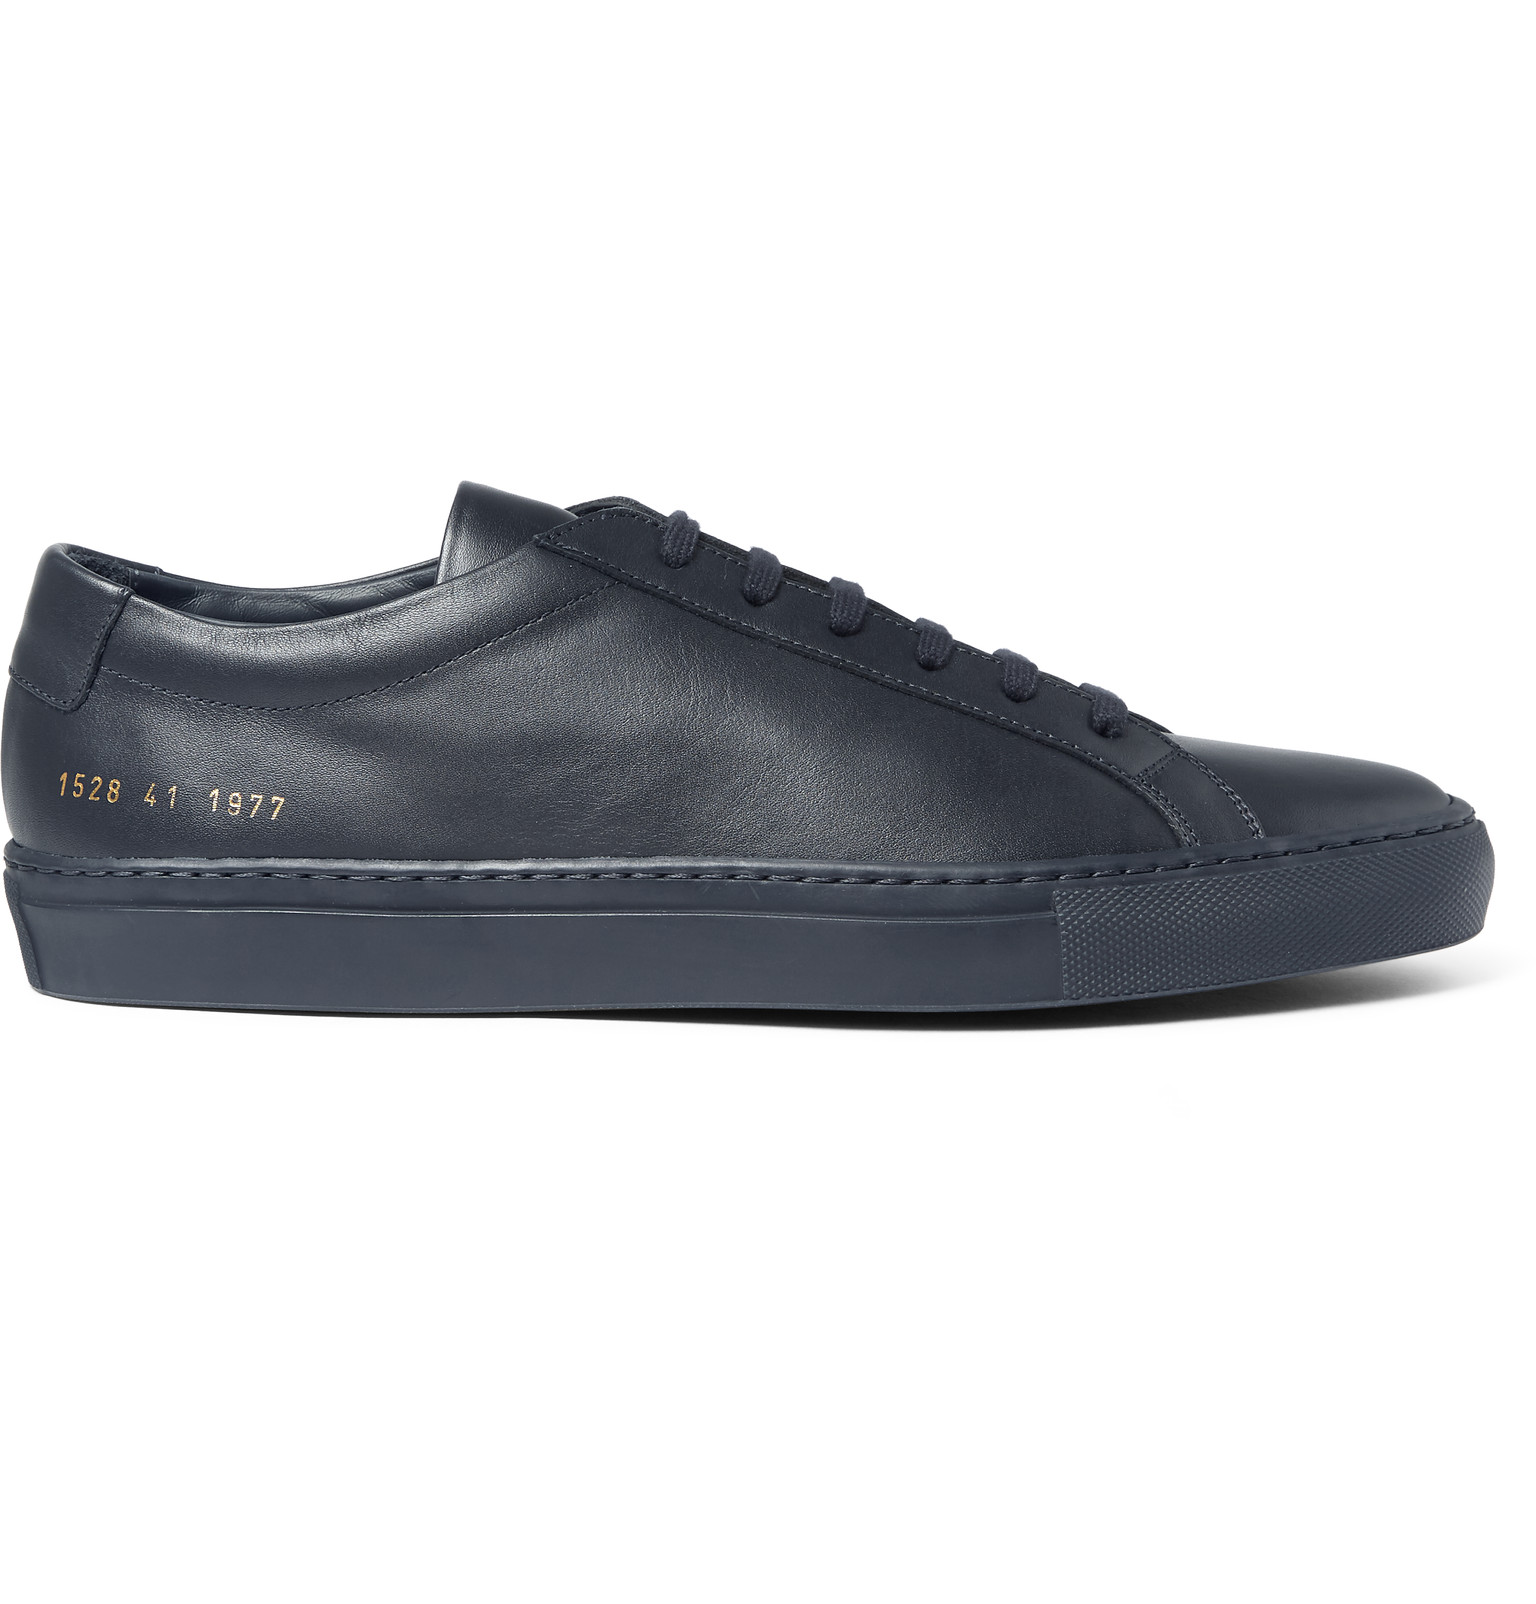 f7f8b4c6a5fbb Common Projects - Original Achilles Leather Sneakers